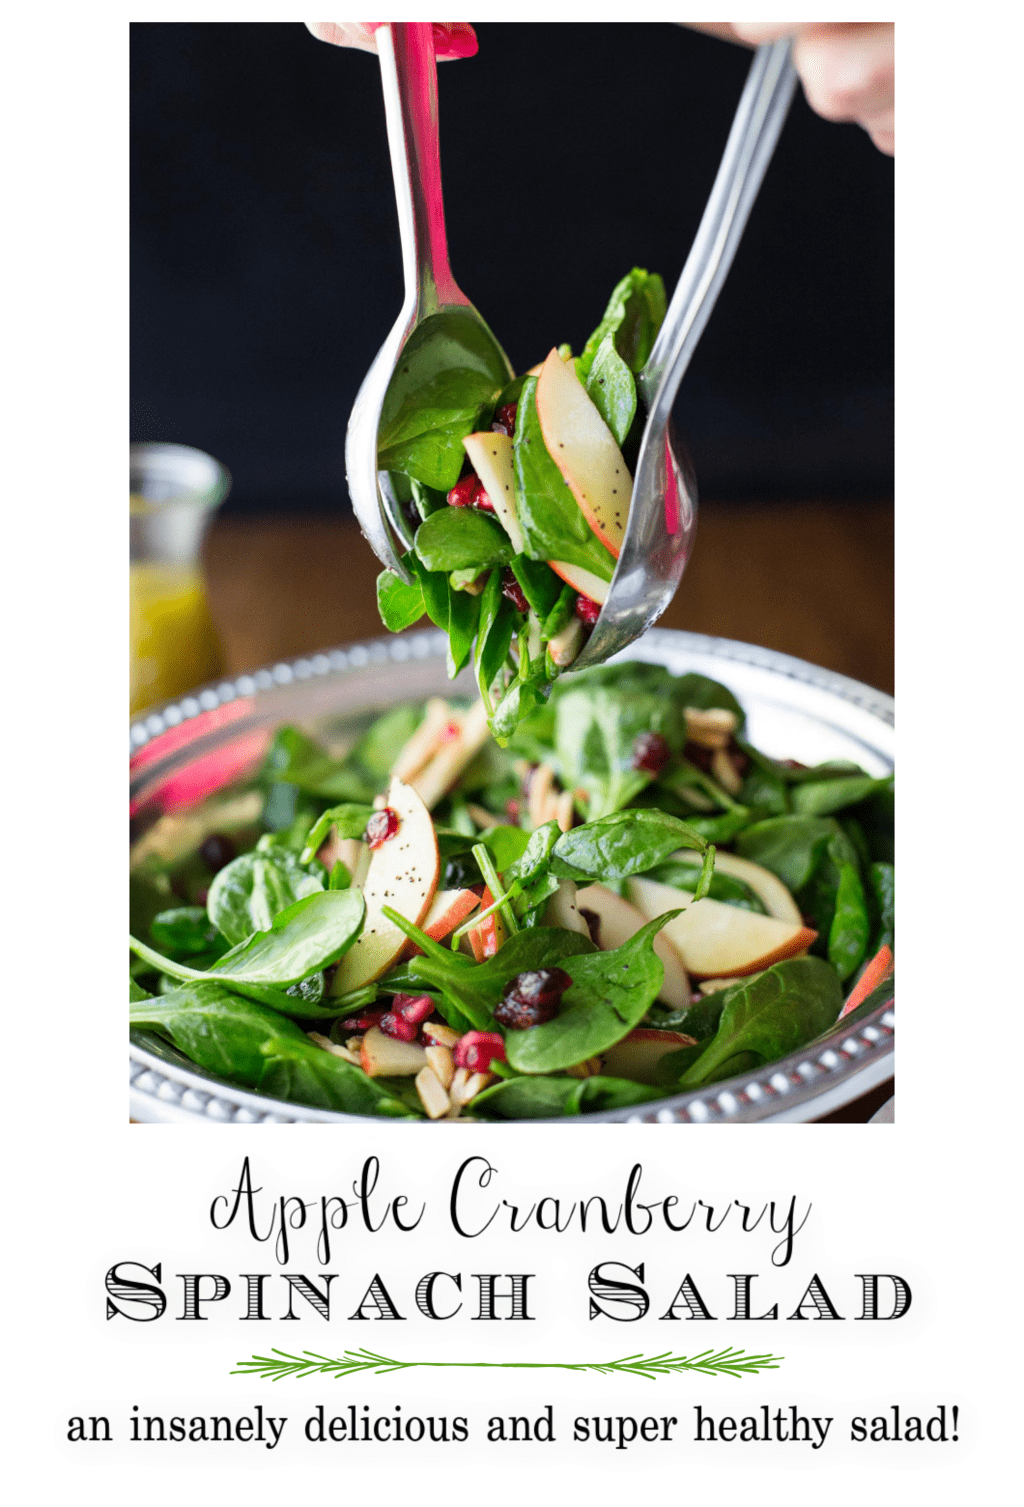 Apple Cranberry Spinach Salad